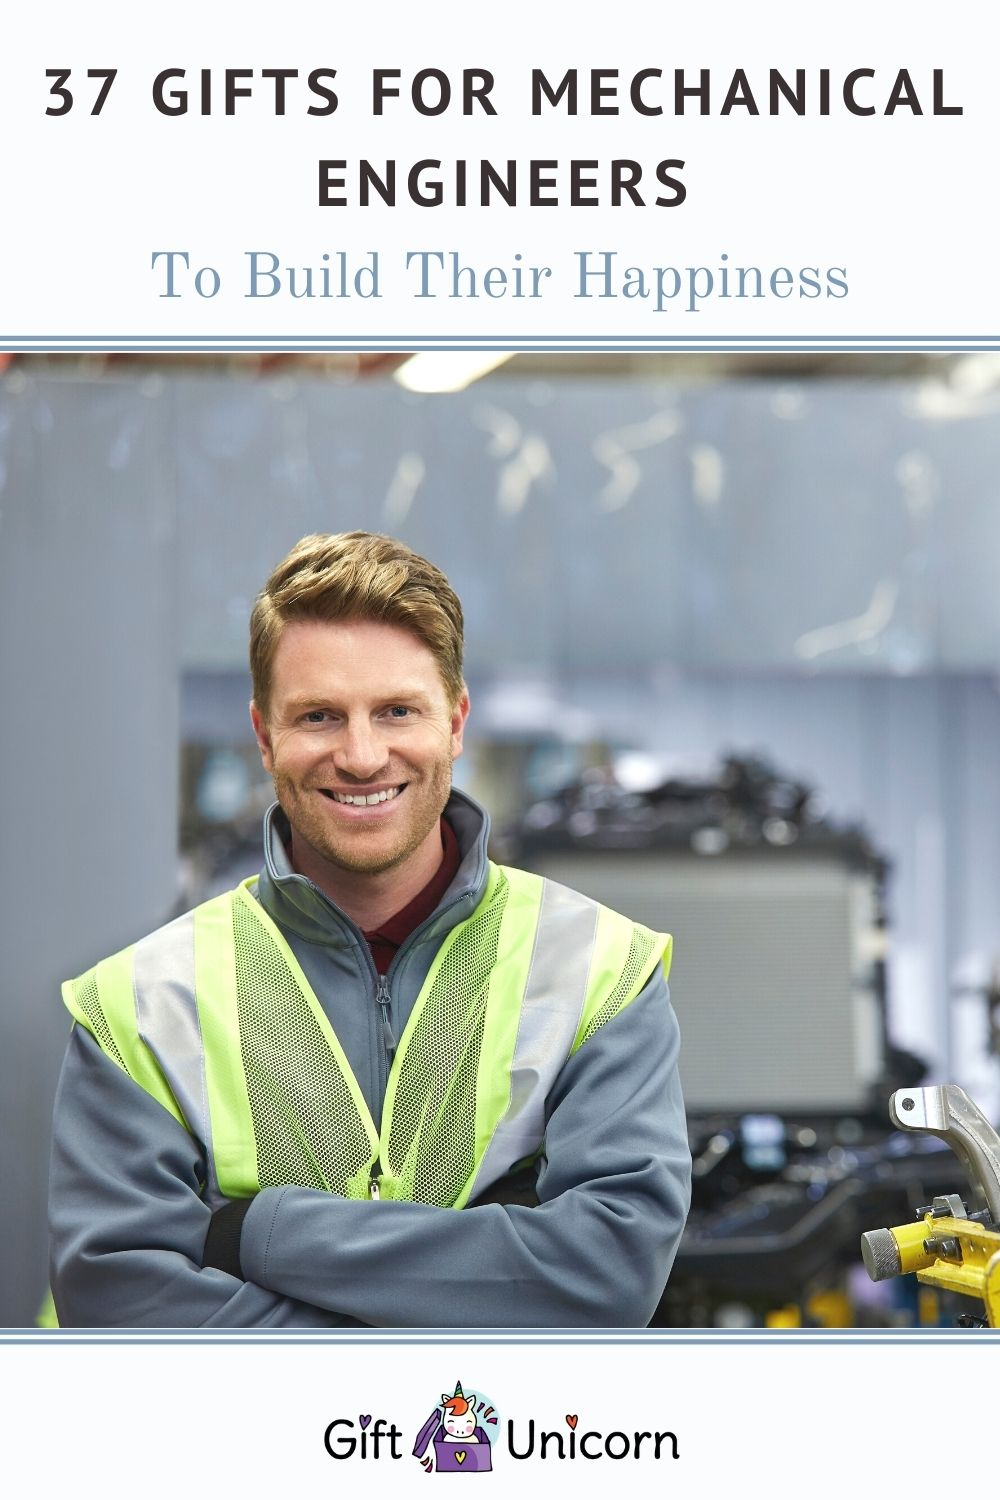 37 Gifts for Mechanical Engineers To Build Their Happiness - pinterest pin image